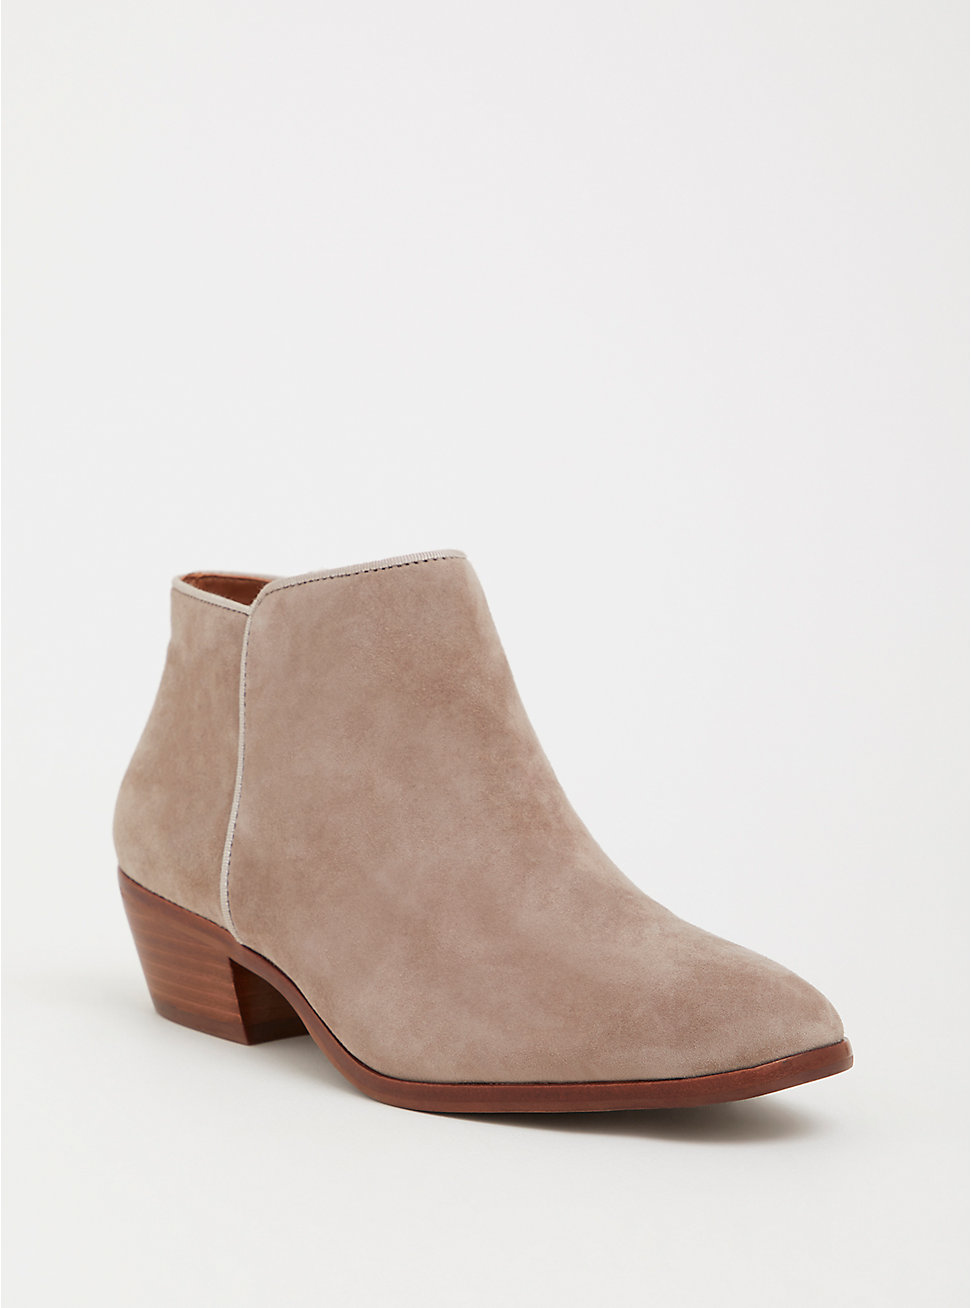 Tan Faux Suede Ankle Bootie - Sam Edelman available at Torrid ($120)